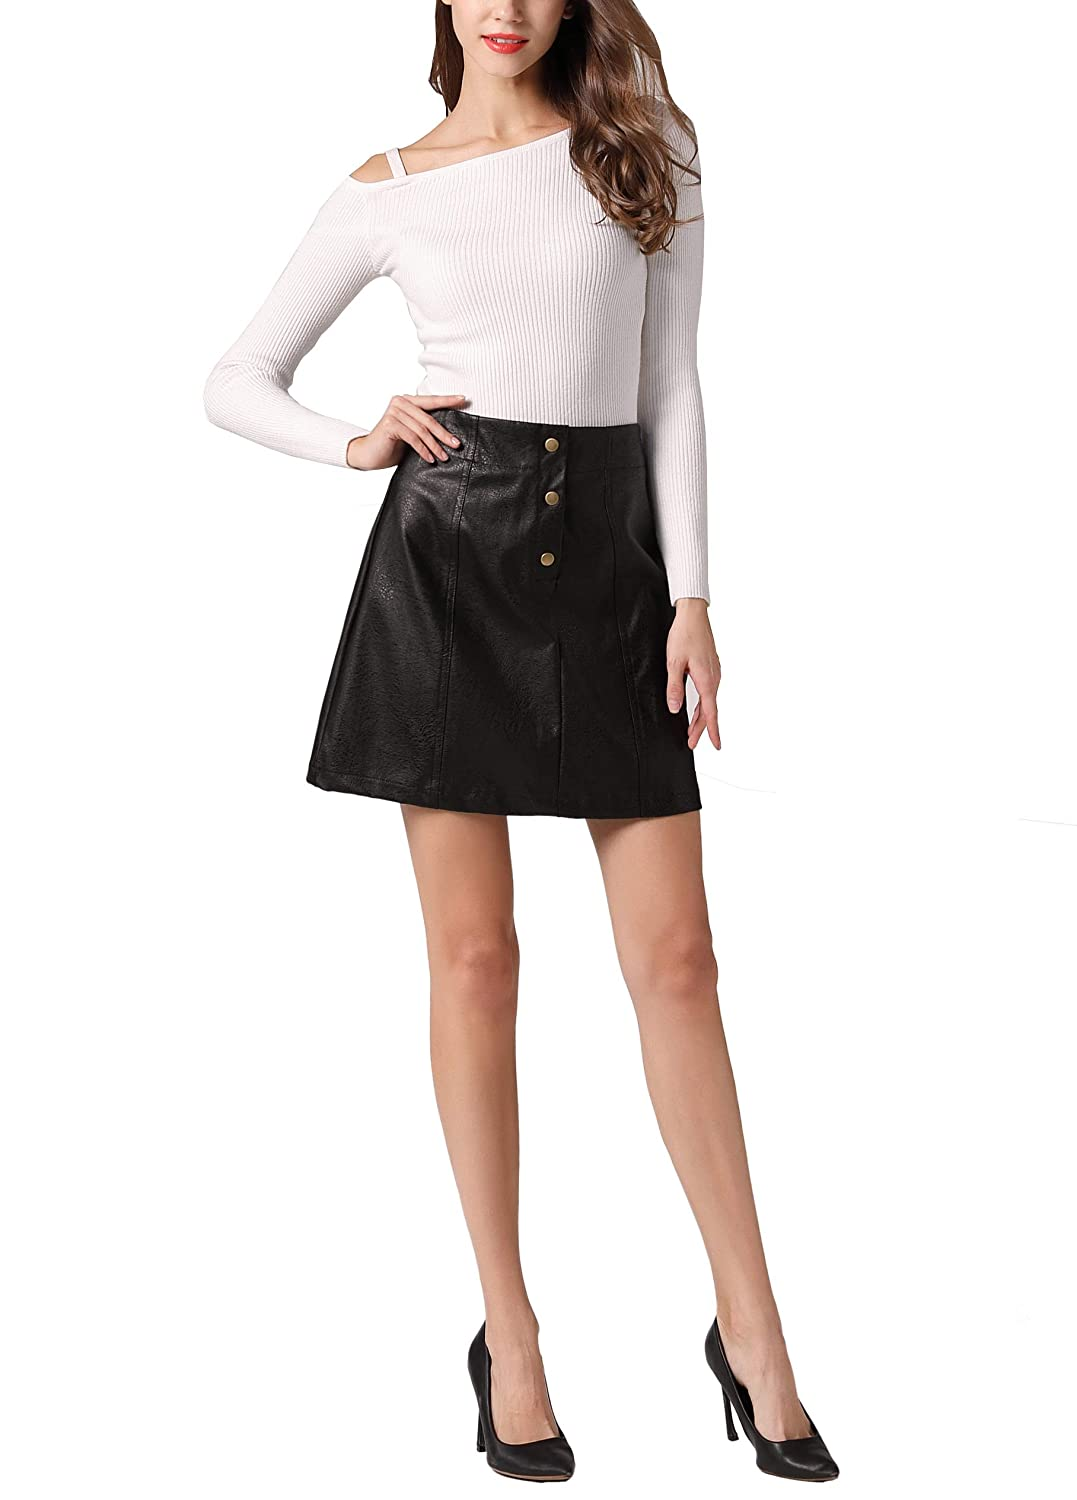 Black77 GUANYY Women's Faux Leather Vintage High Waist Classic Slim Mini Pencil Skirt